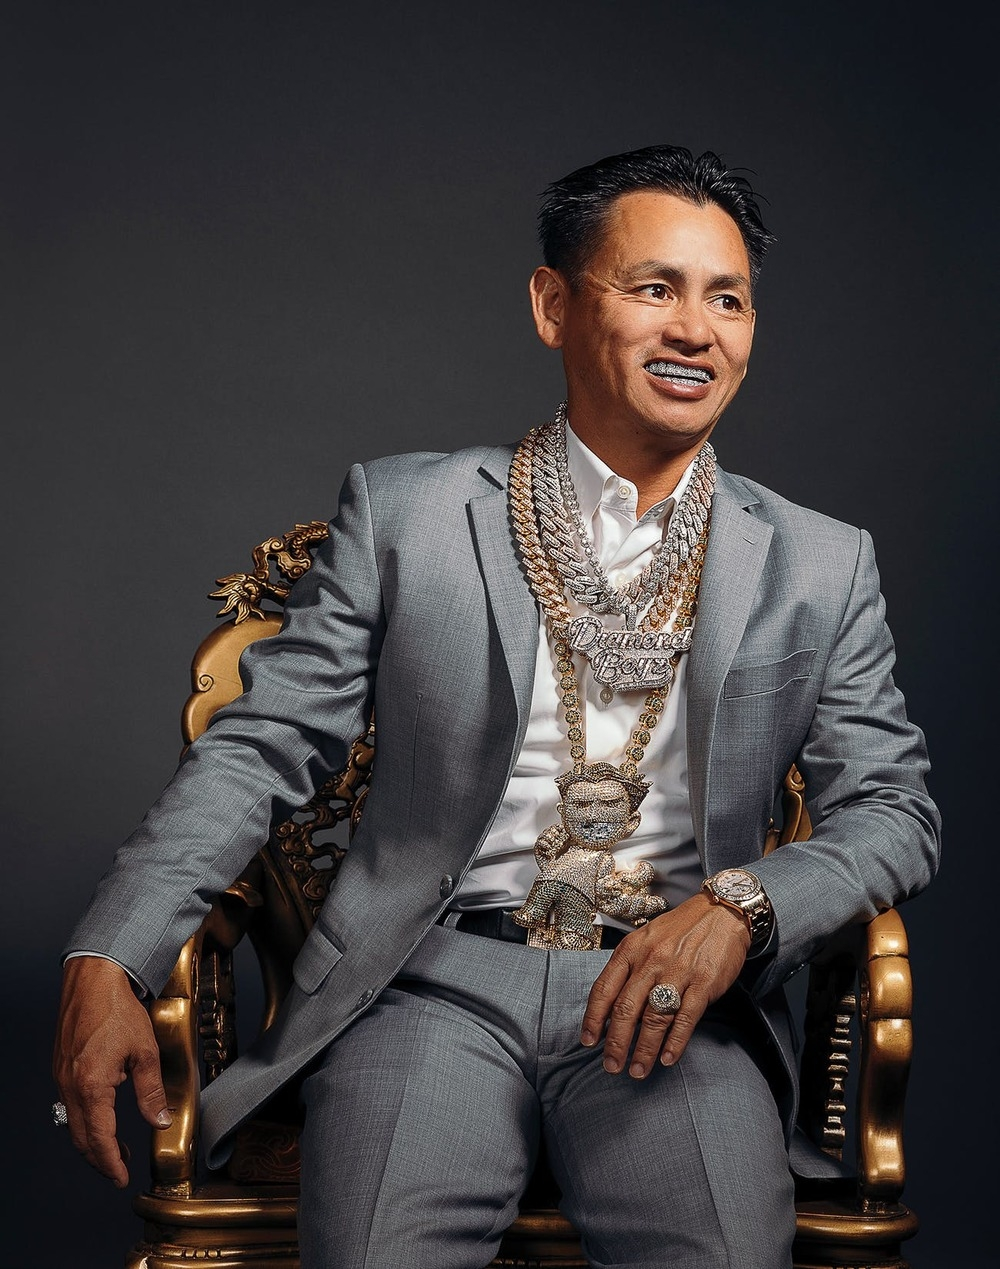 Who Is Johnny Dang – Vietnamese Jeweler Behind Success Of American Rappers?